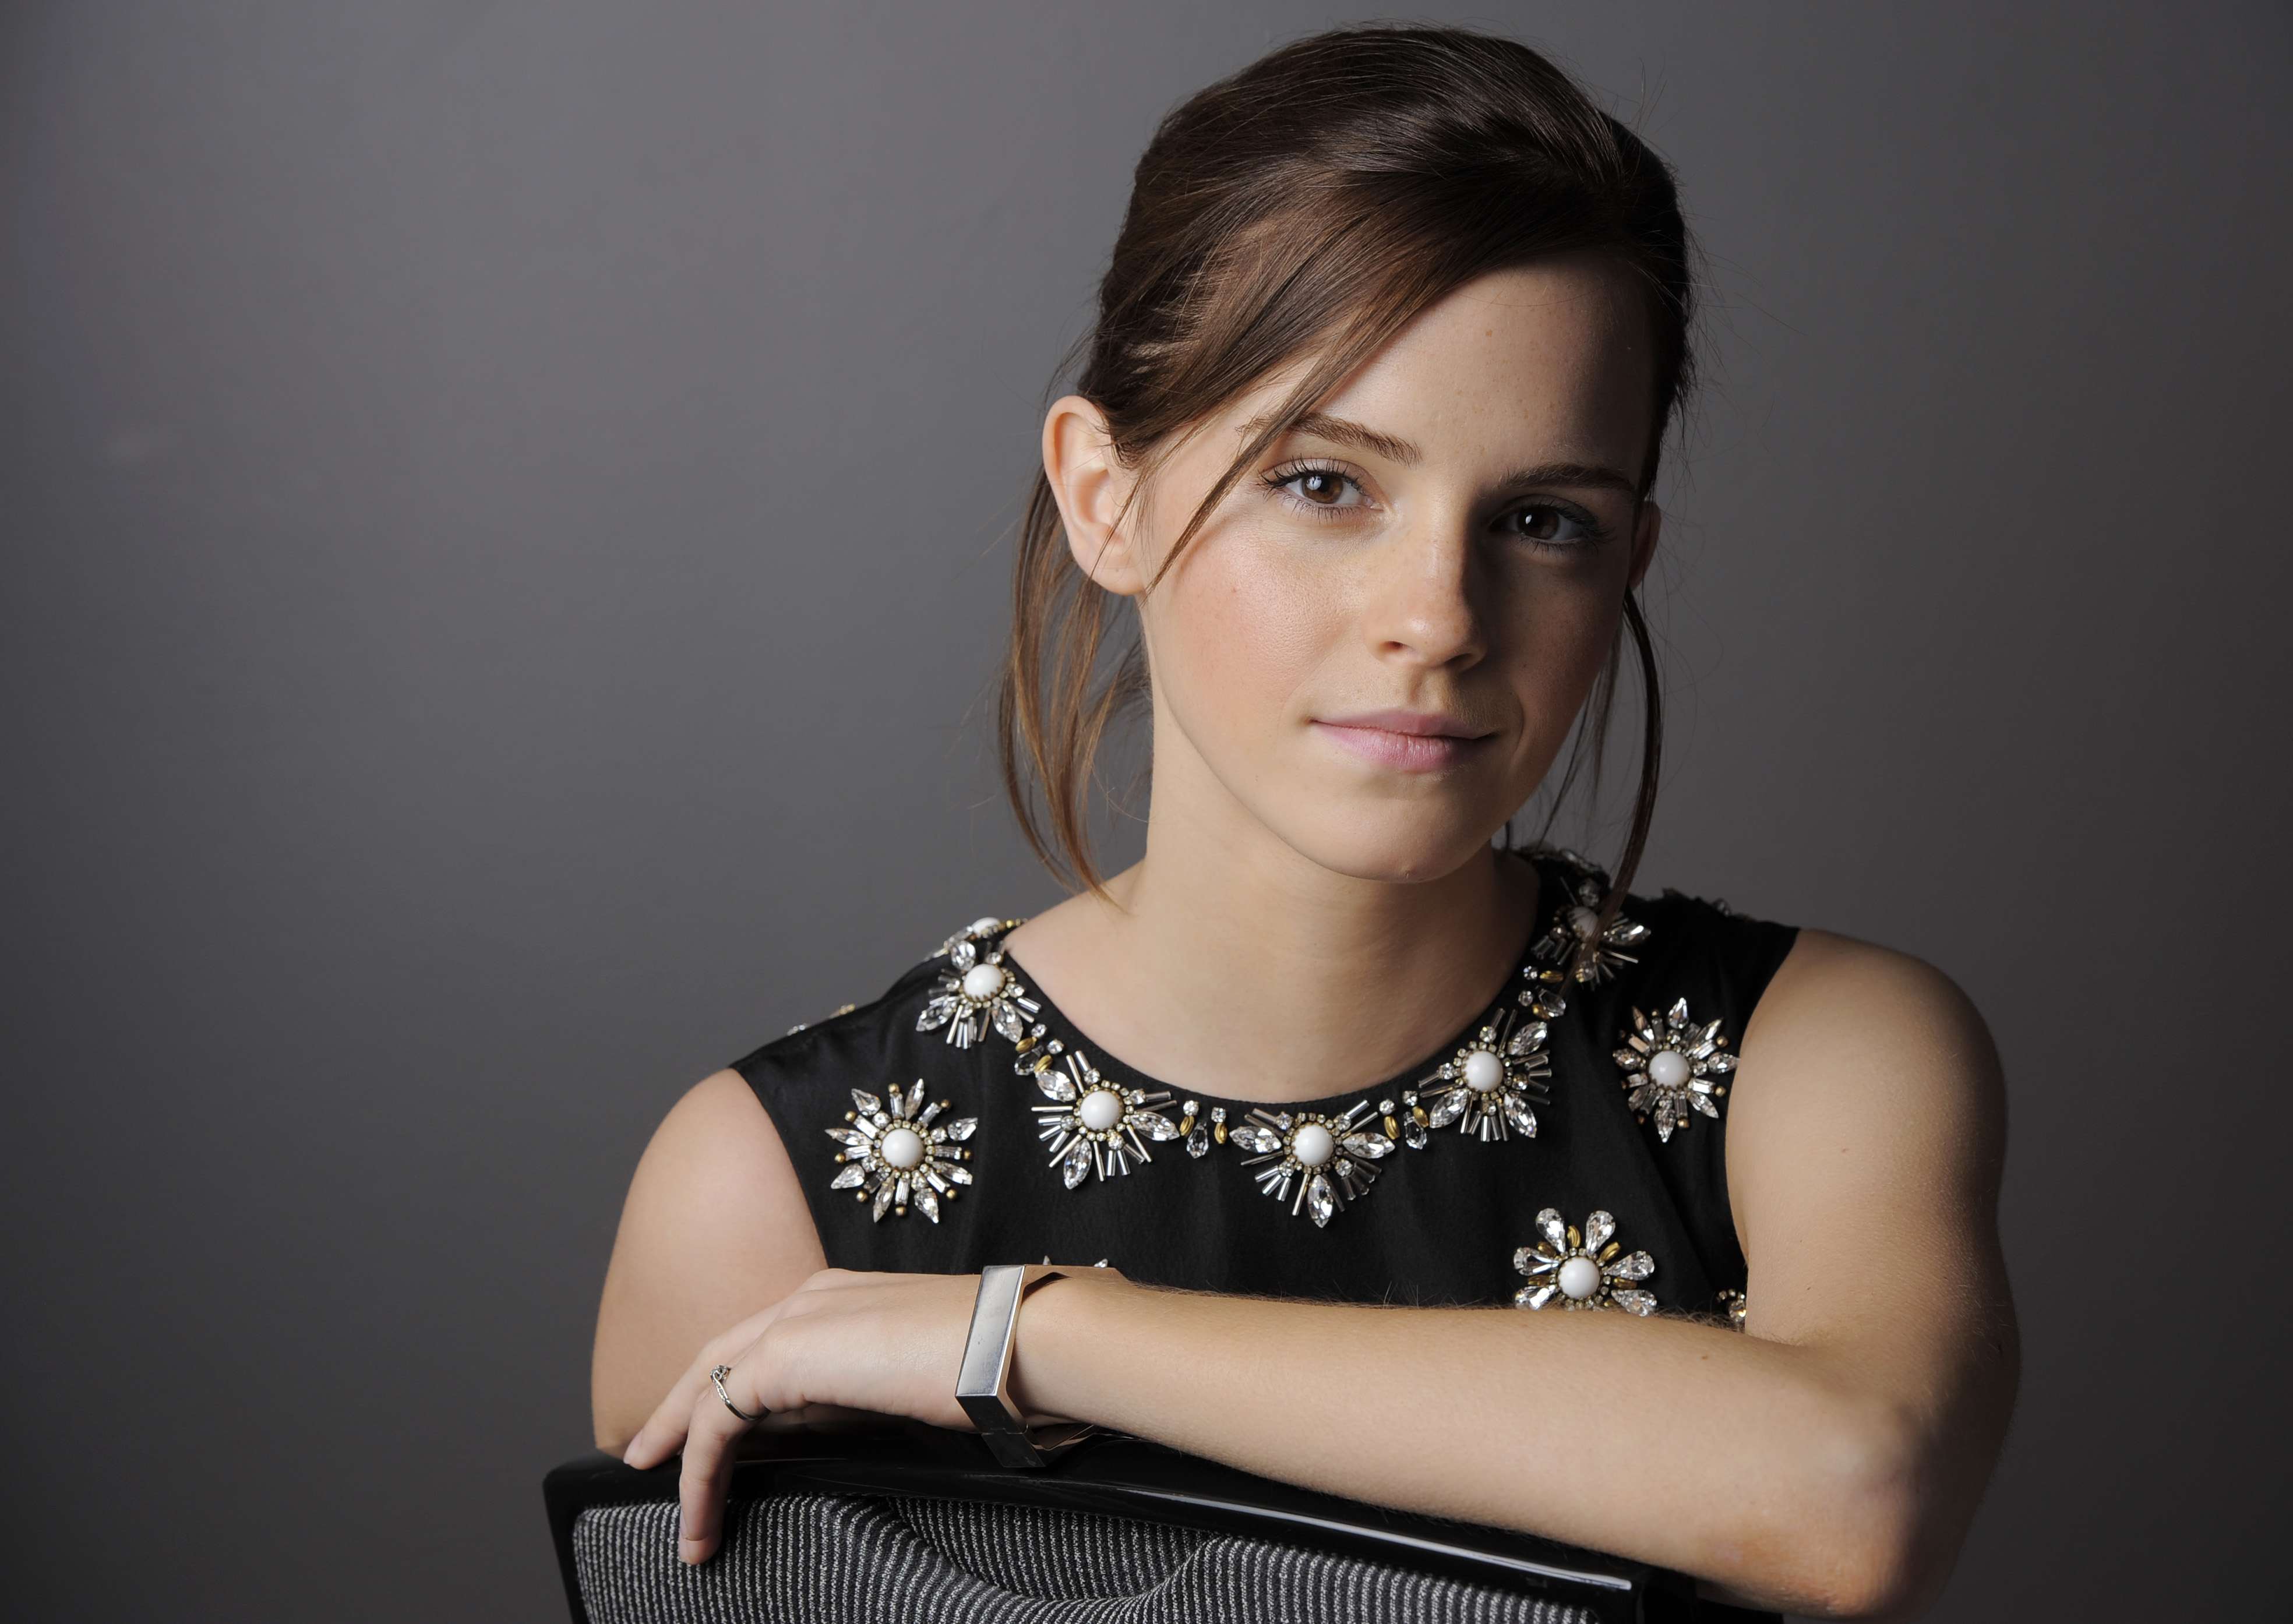 Emma Watson To Star In Live Action Beauty And The Beast